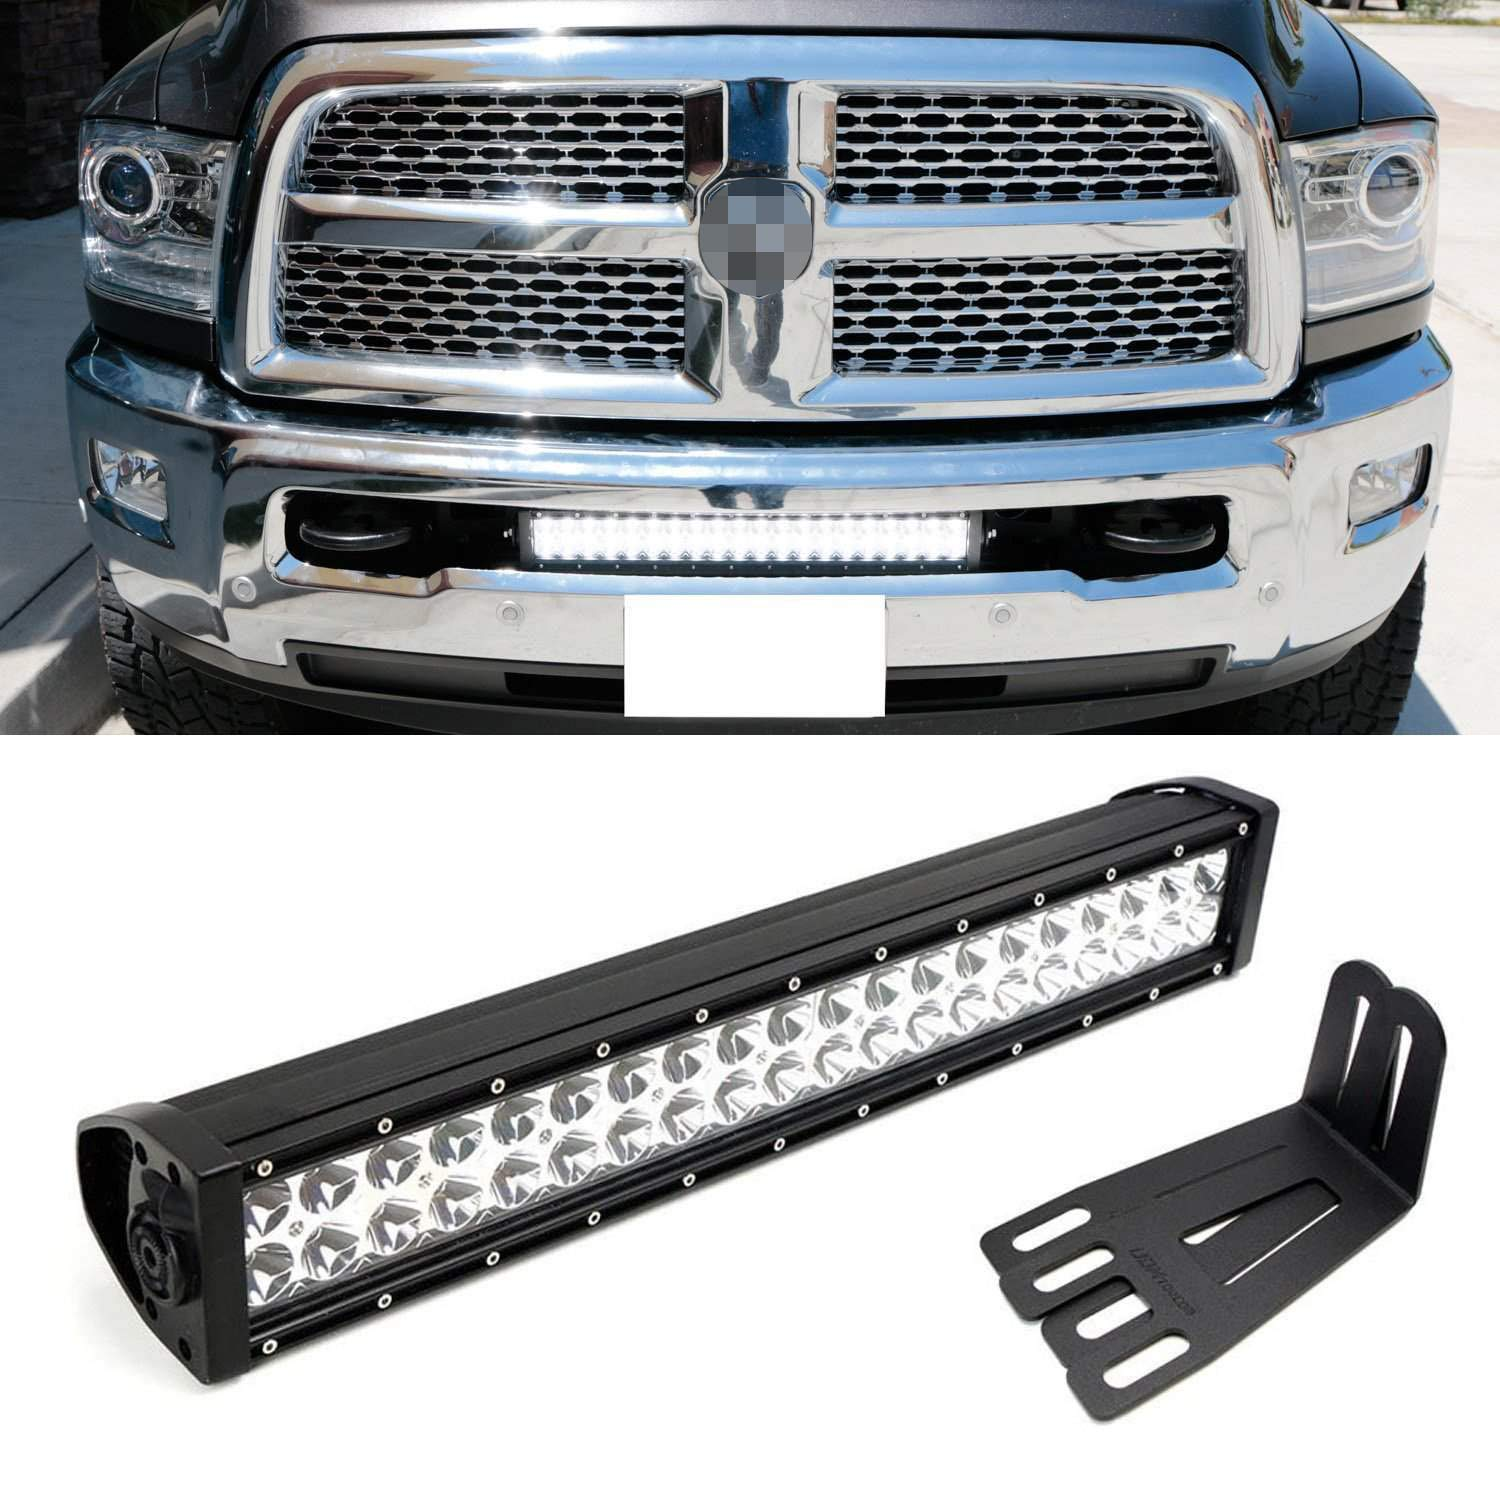 Ijdmtoy 20 120w High Power Double Row Led Light Bar With